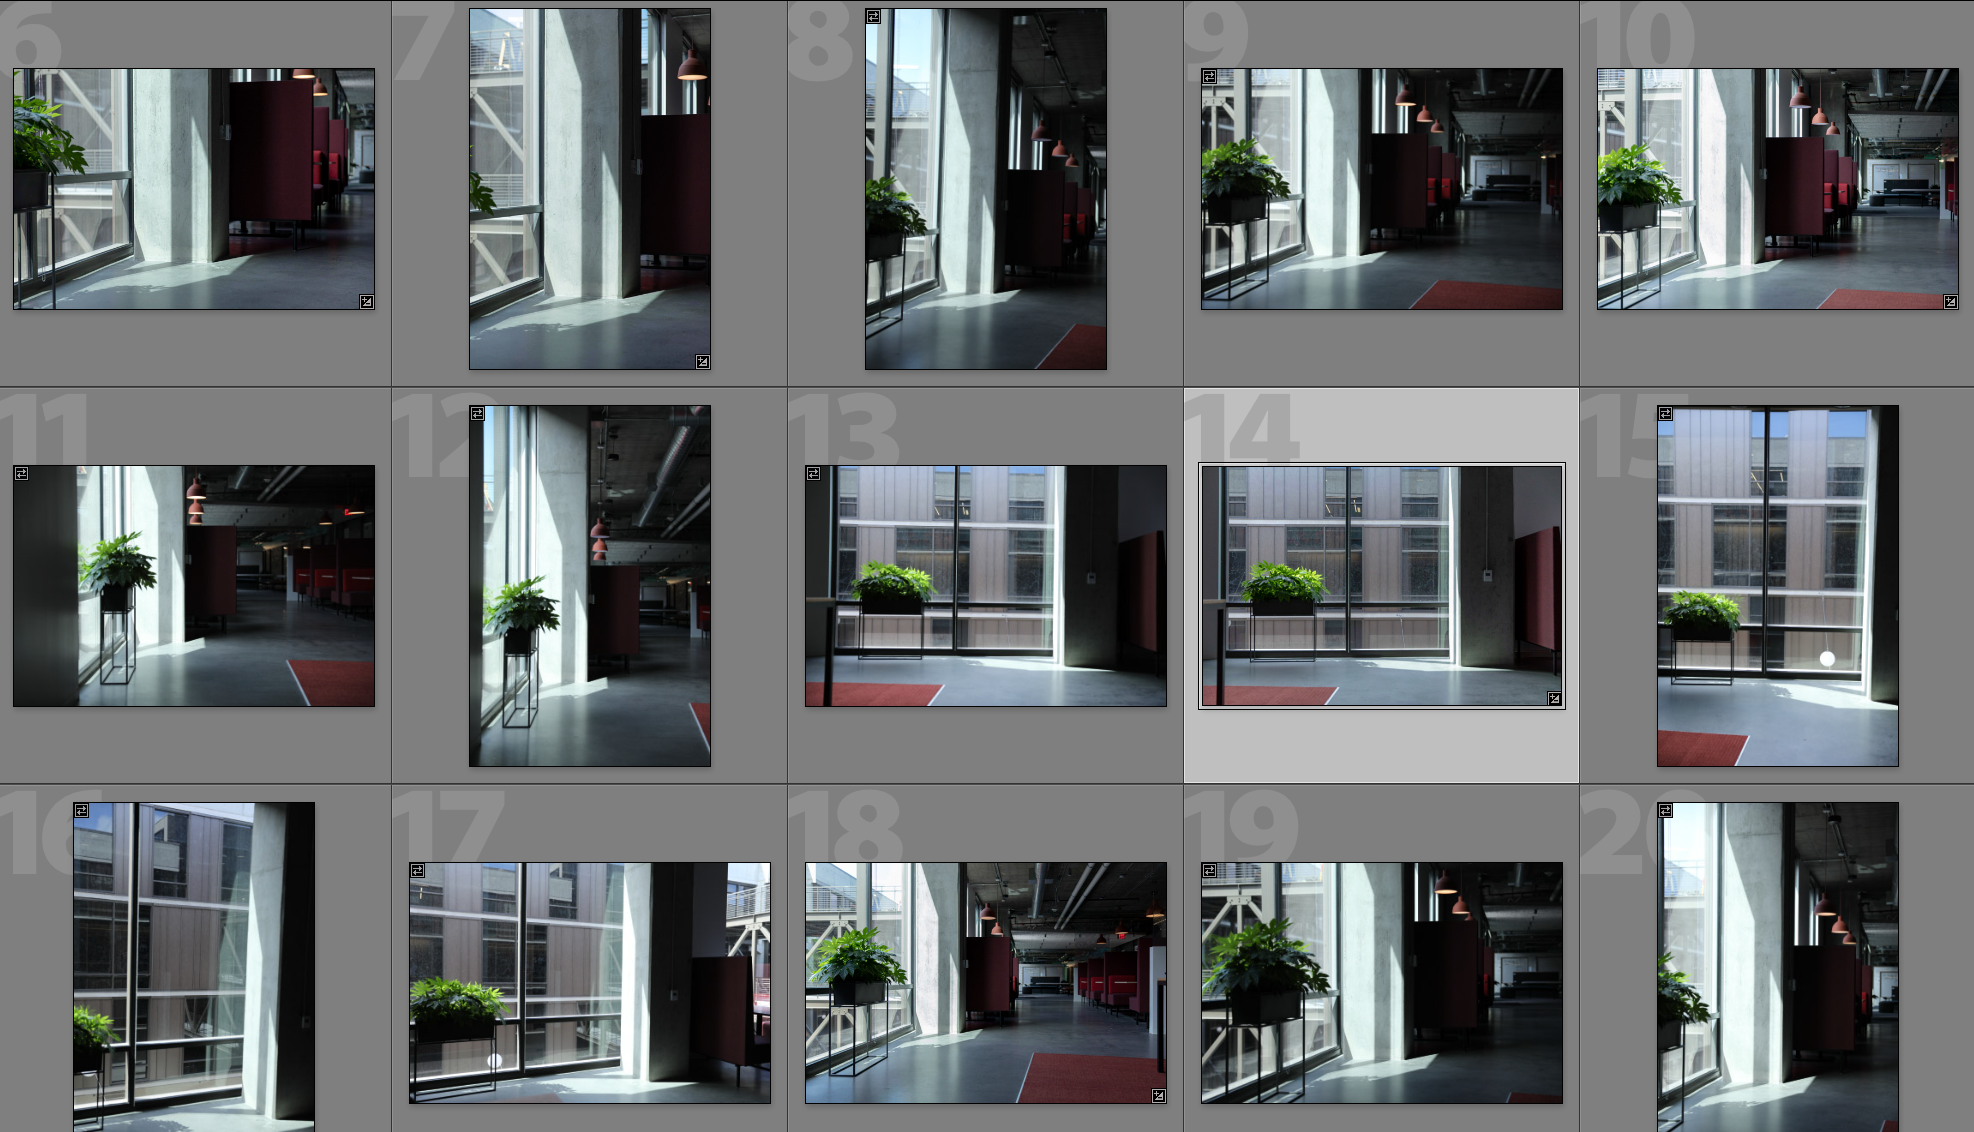 A series of background photographs captured for a 3D composite image